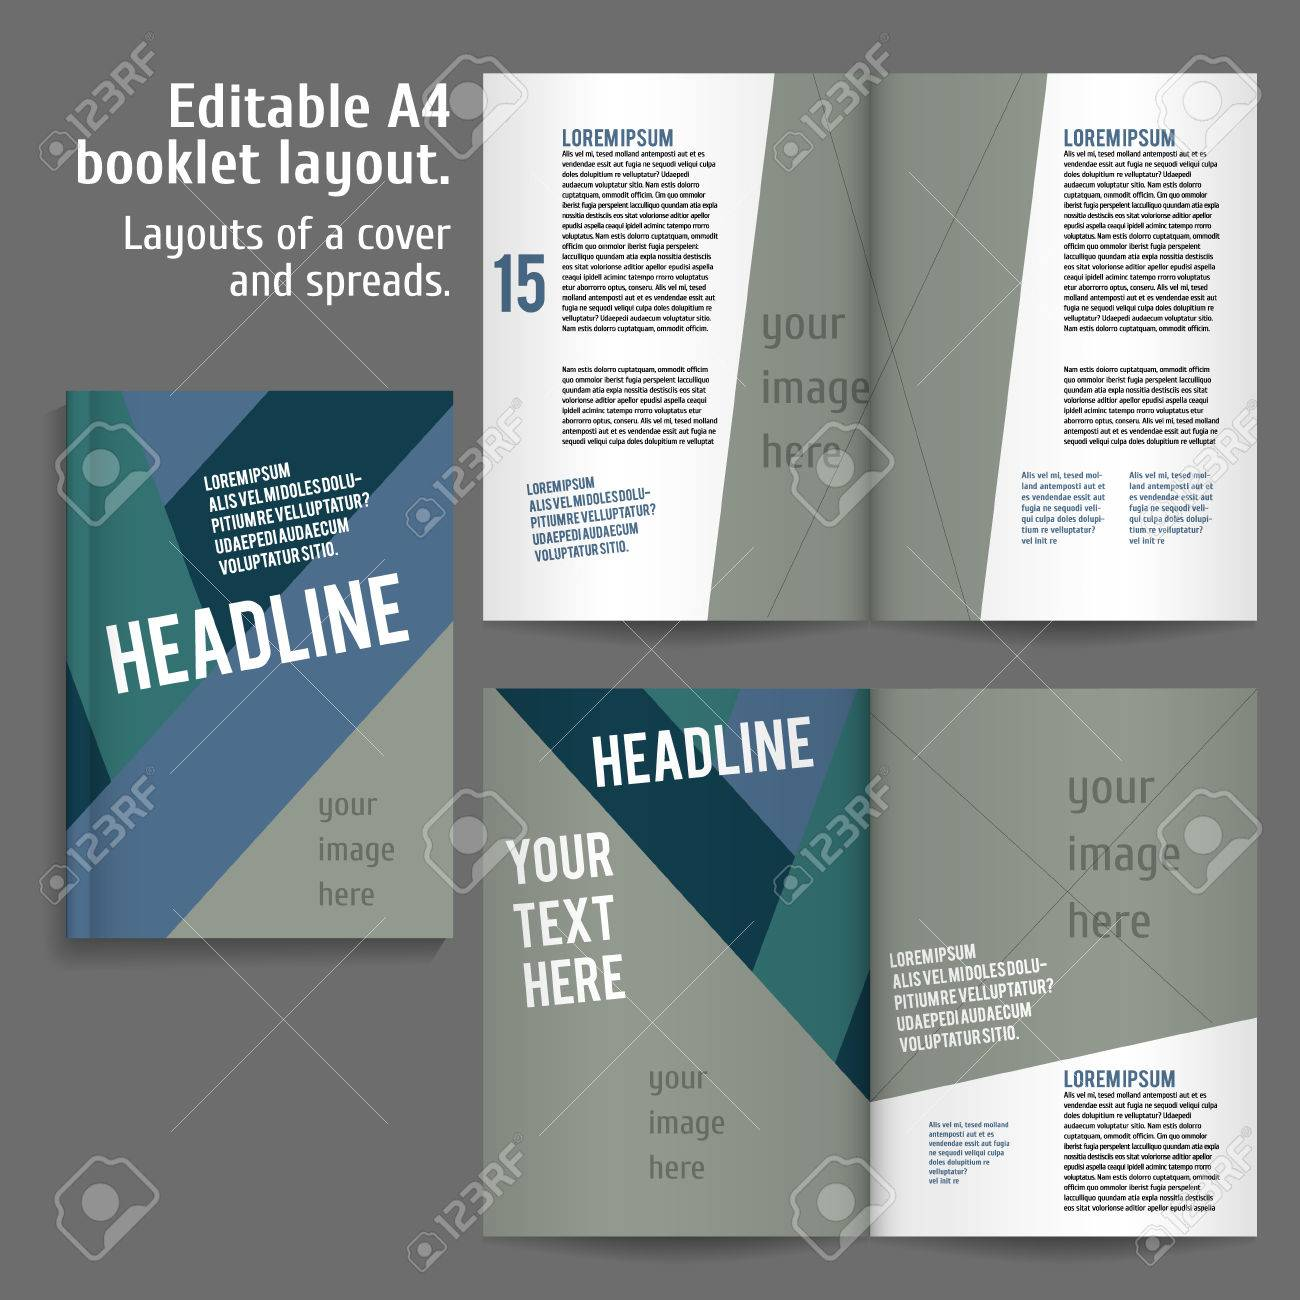 A4 Book Layout Design Template With Cover And 2 Spreads Of Contents Royalty Free Cliparts Vectors And Stock Illustration Image 46604210